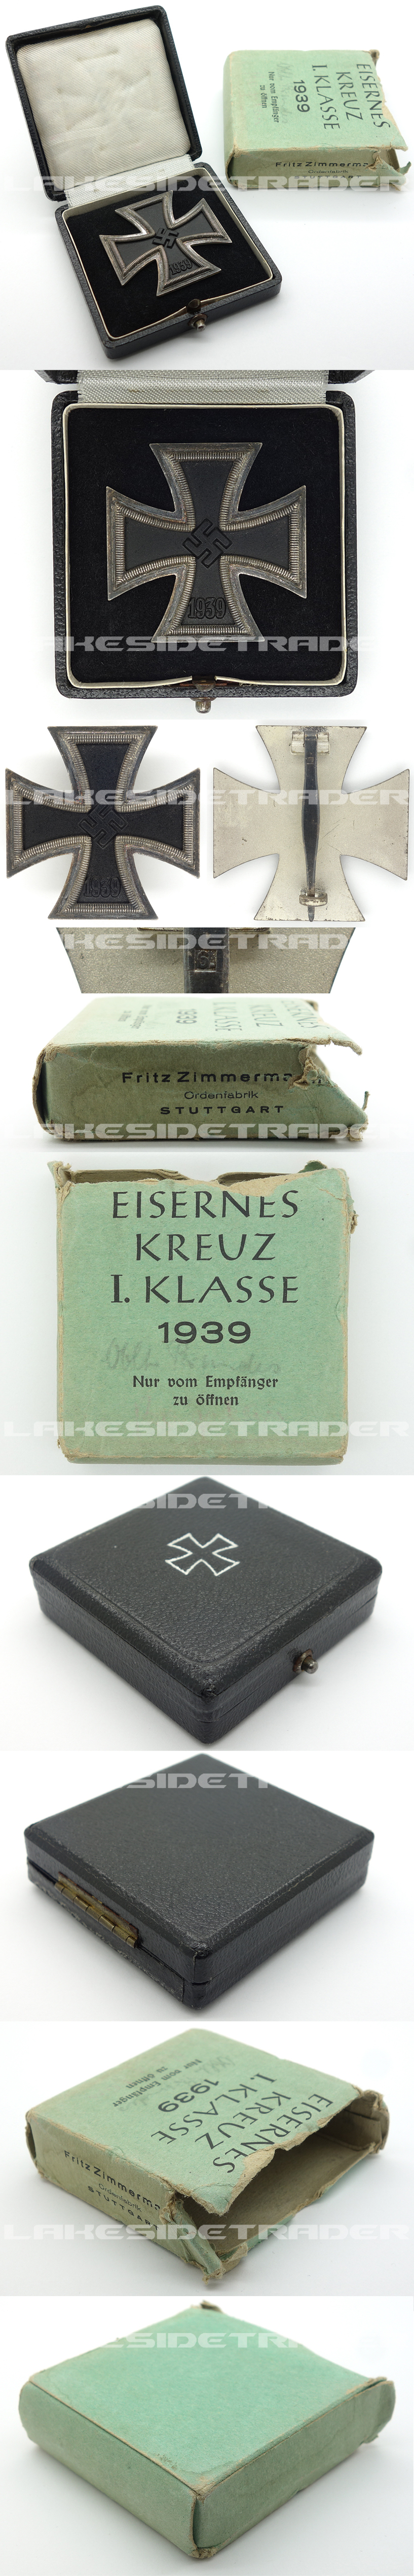 Issue Carton - Cased 1st Class Iron Cross by Zimmermann